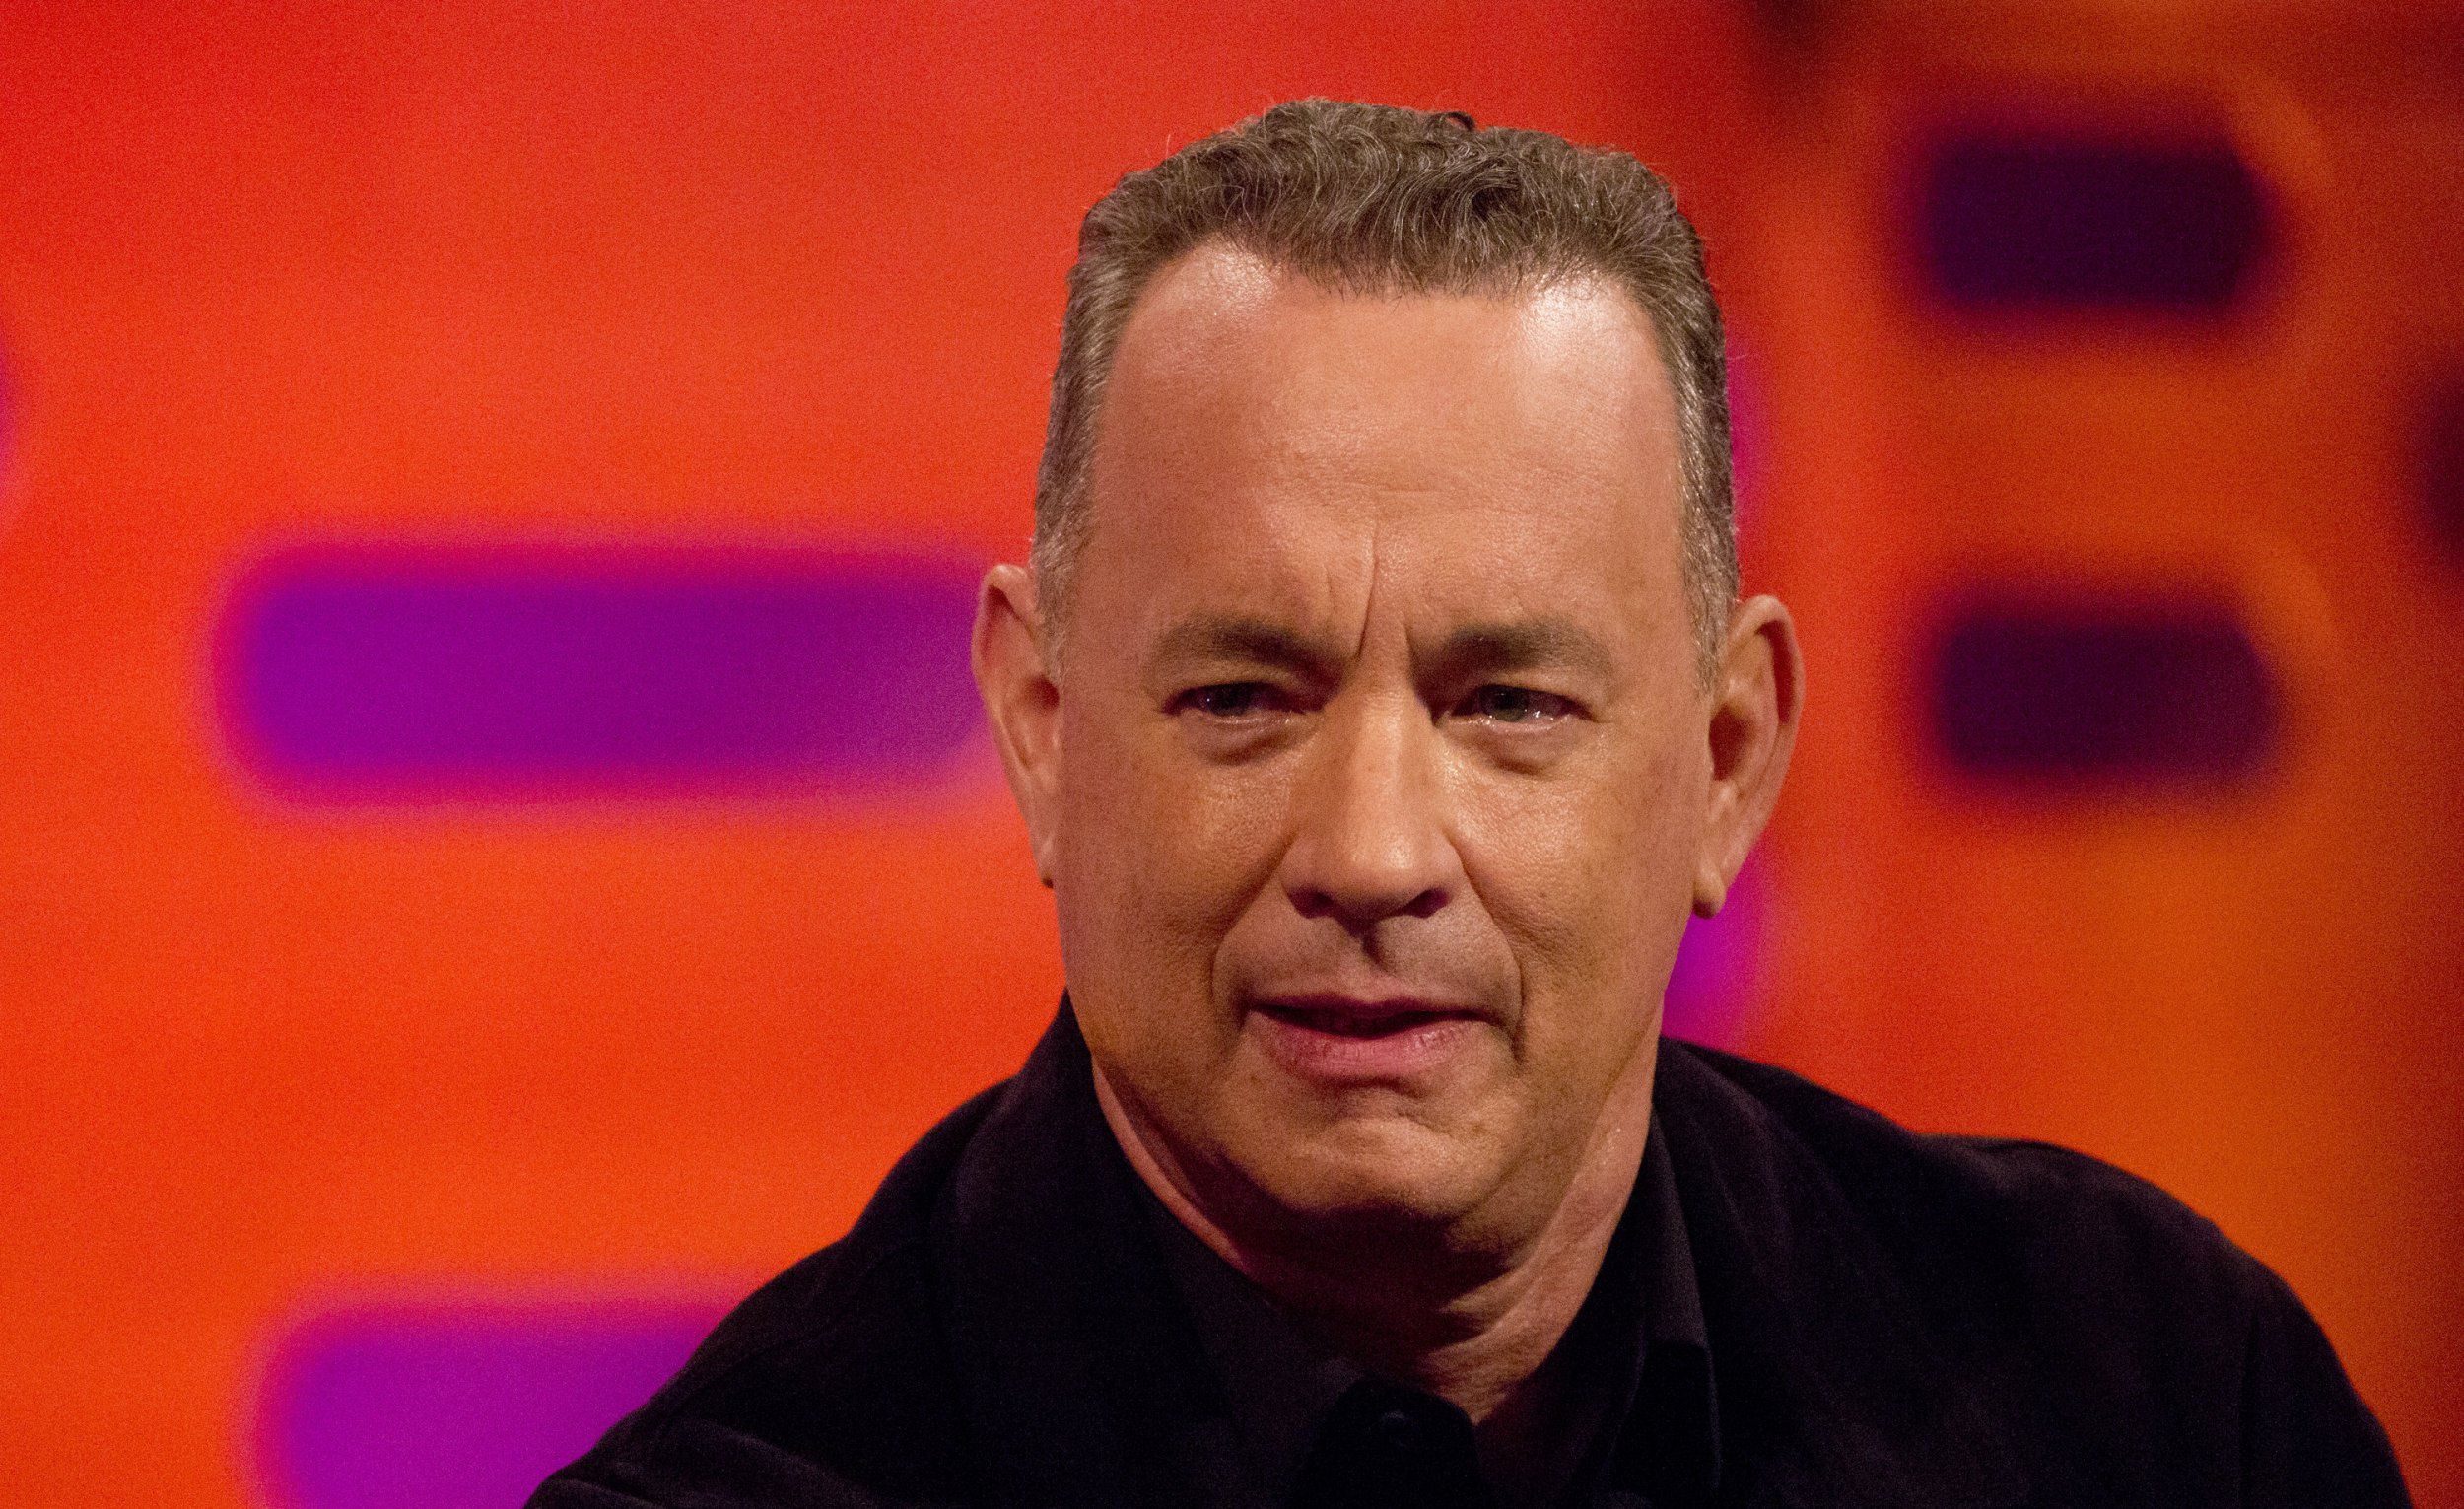 Tom Hanks reveals he auditioned for Mamma Mia but his singing voice 'would have scared children'